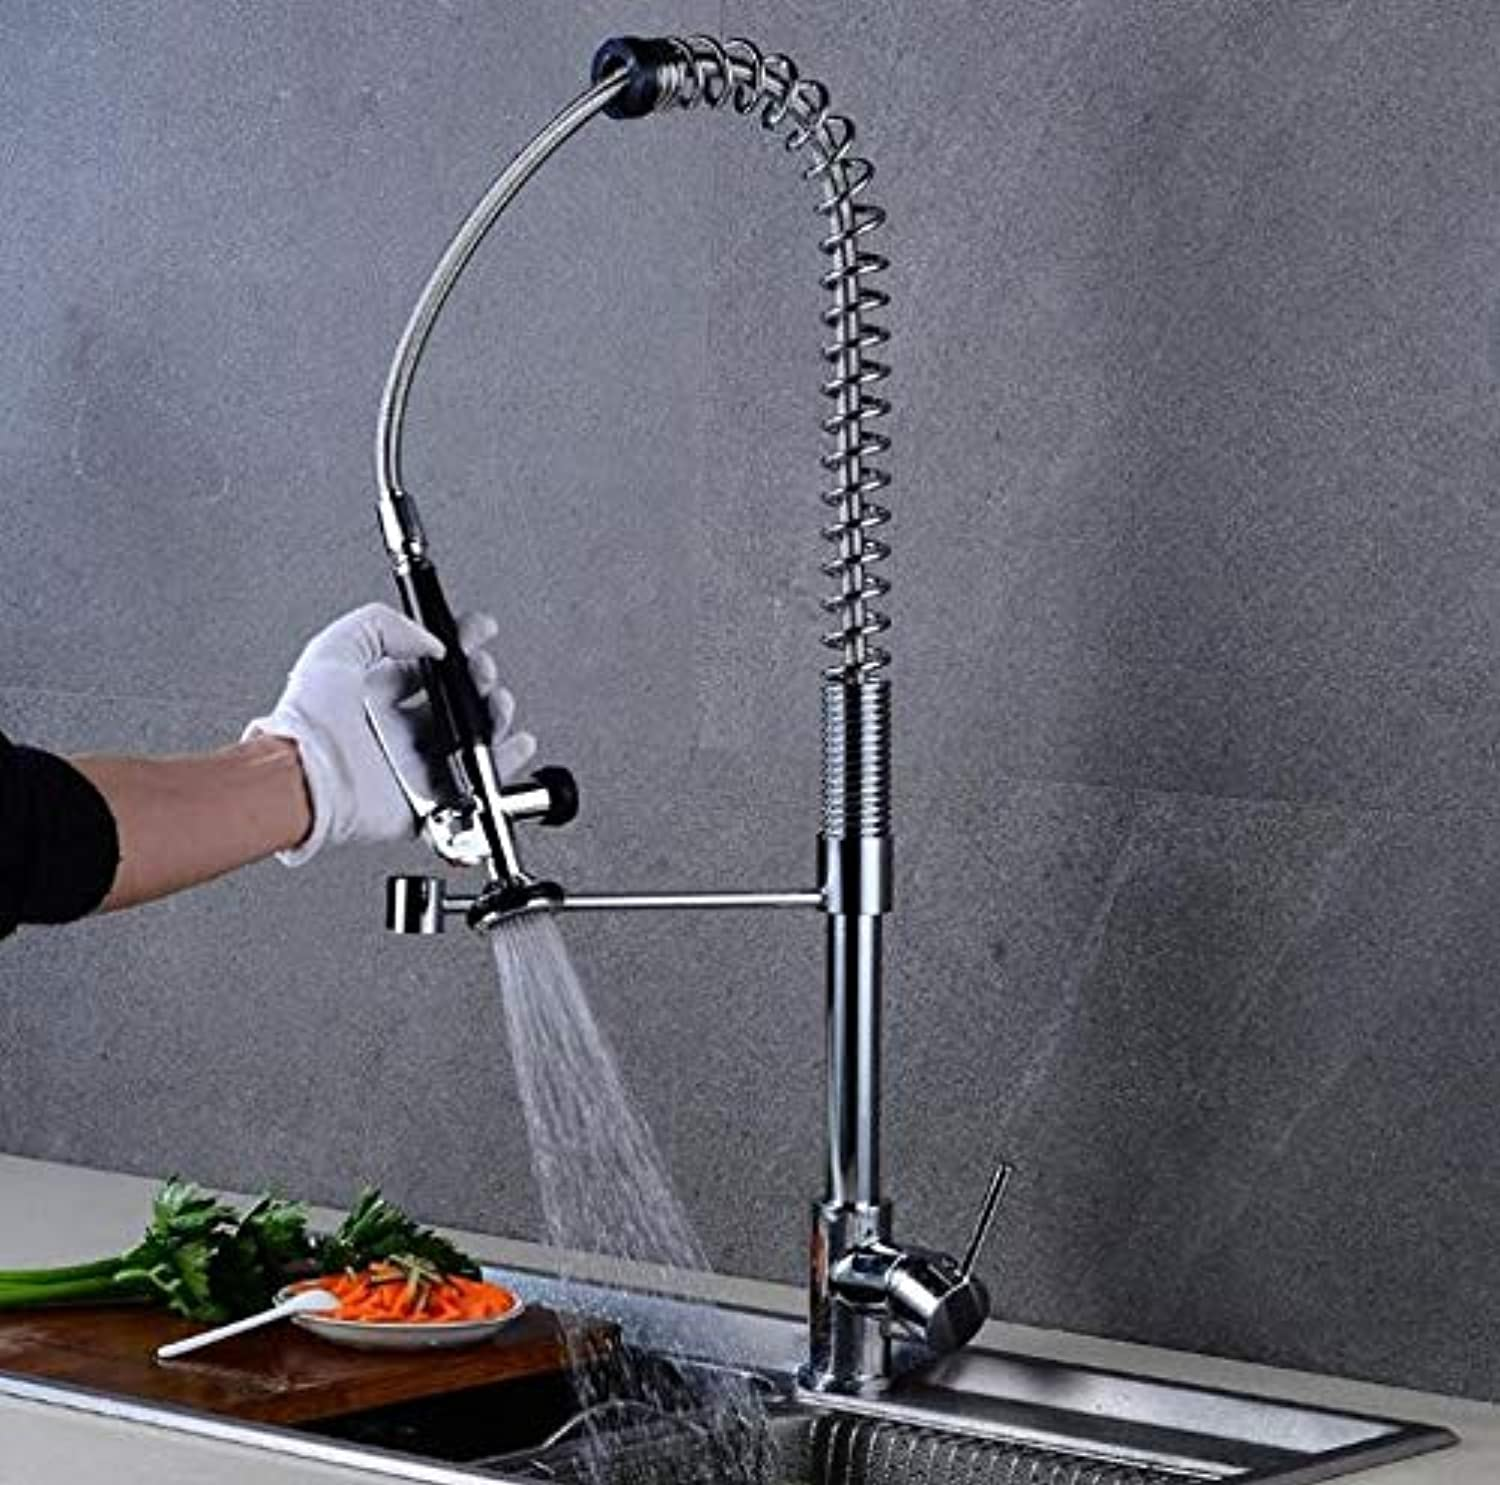 Decorry New Style Nickle Chrome color Kitchen Pull Faucet Mixer Dual Water Swivel Spout redatable Hot Cold Faucet Sink Mixer Taps Xt-113